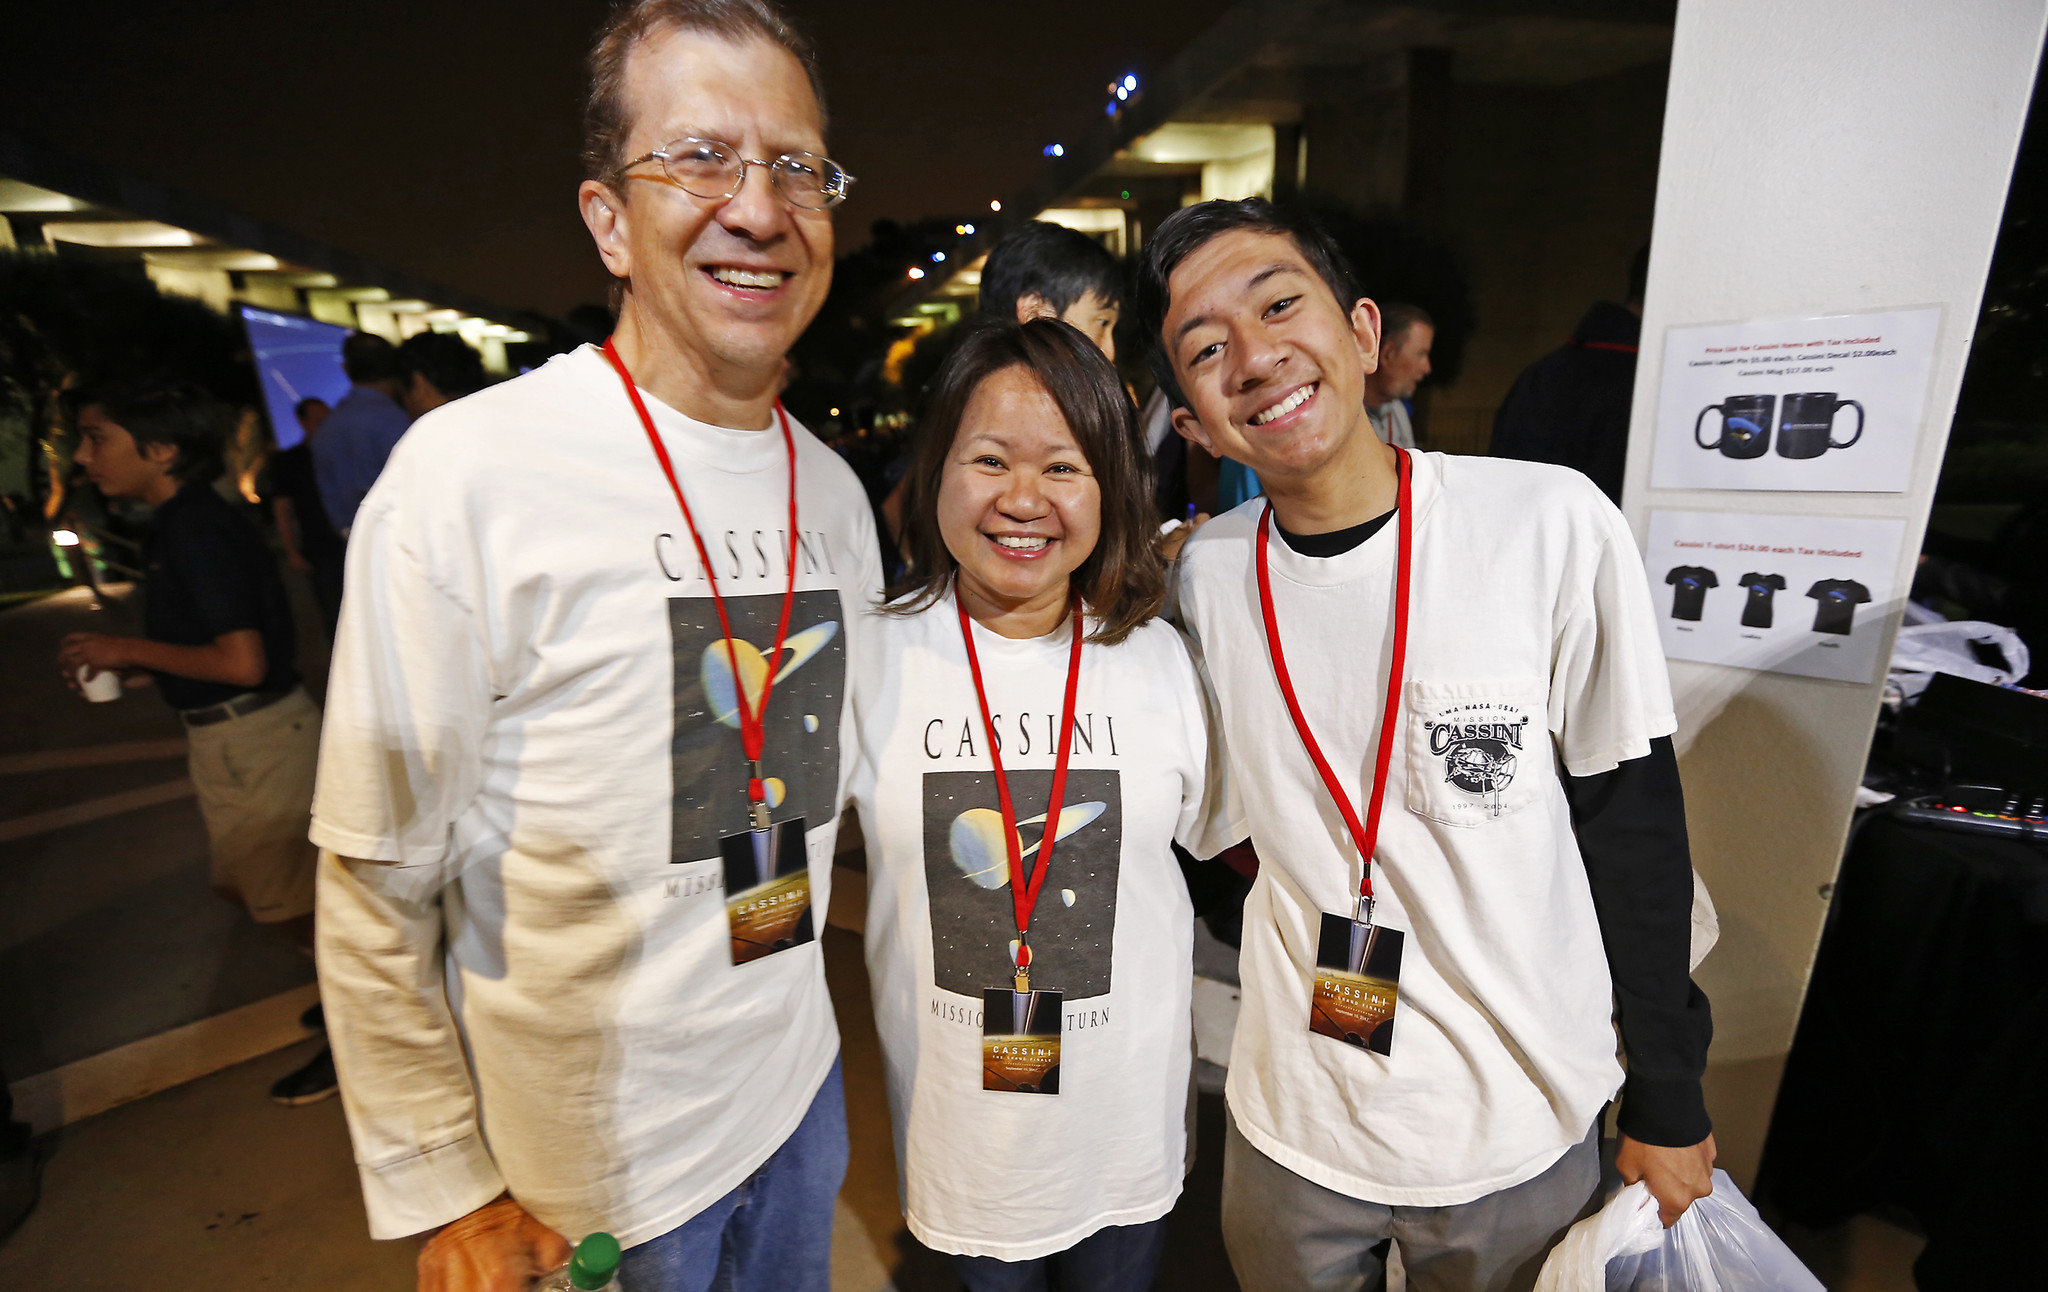 Freia Weisner, center, who works on NASA's Deep Space Network at JPL, wears the original shirt from the 1997 launch. So do husband Mark and son Erik.